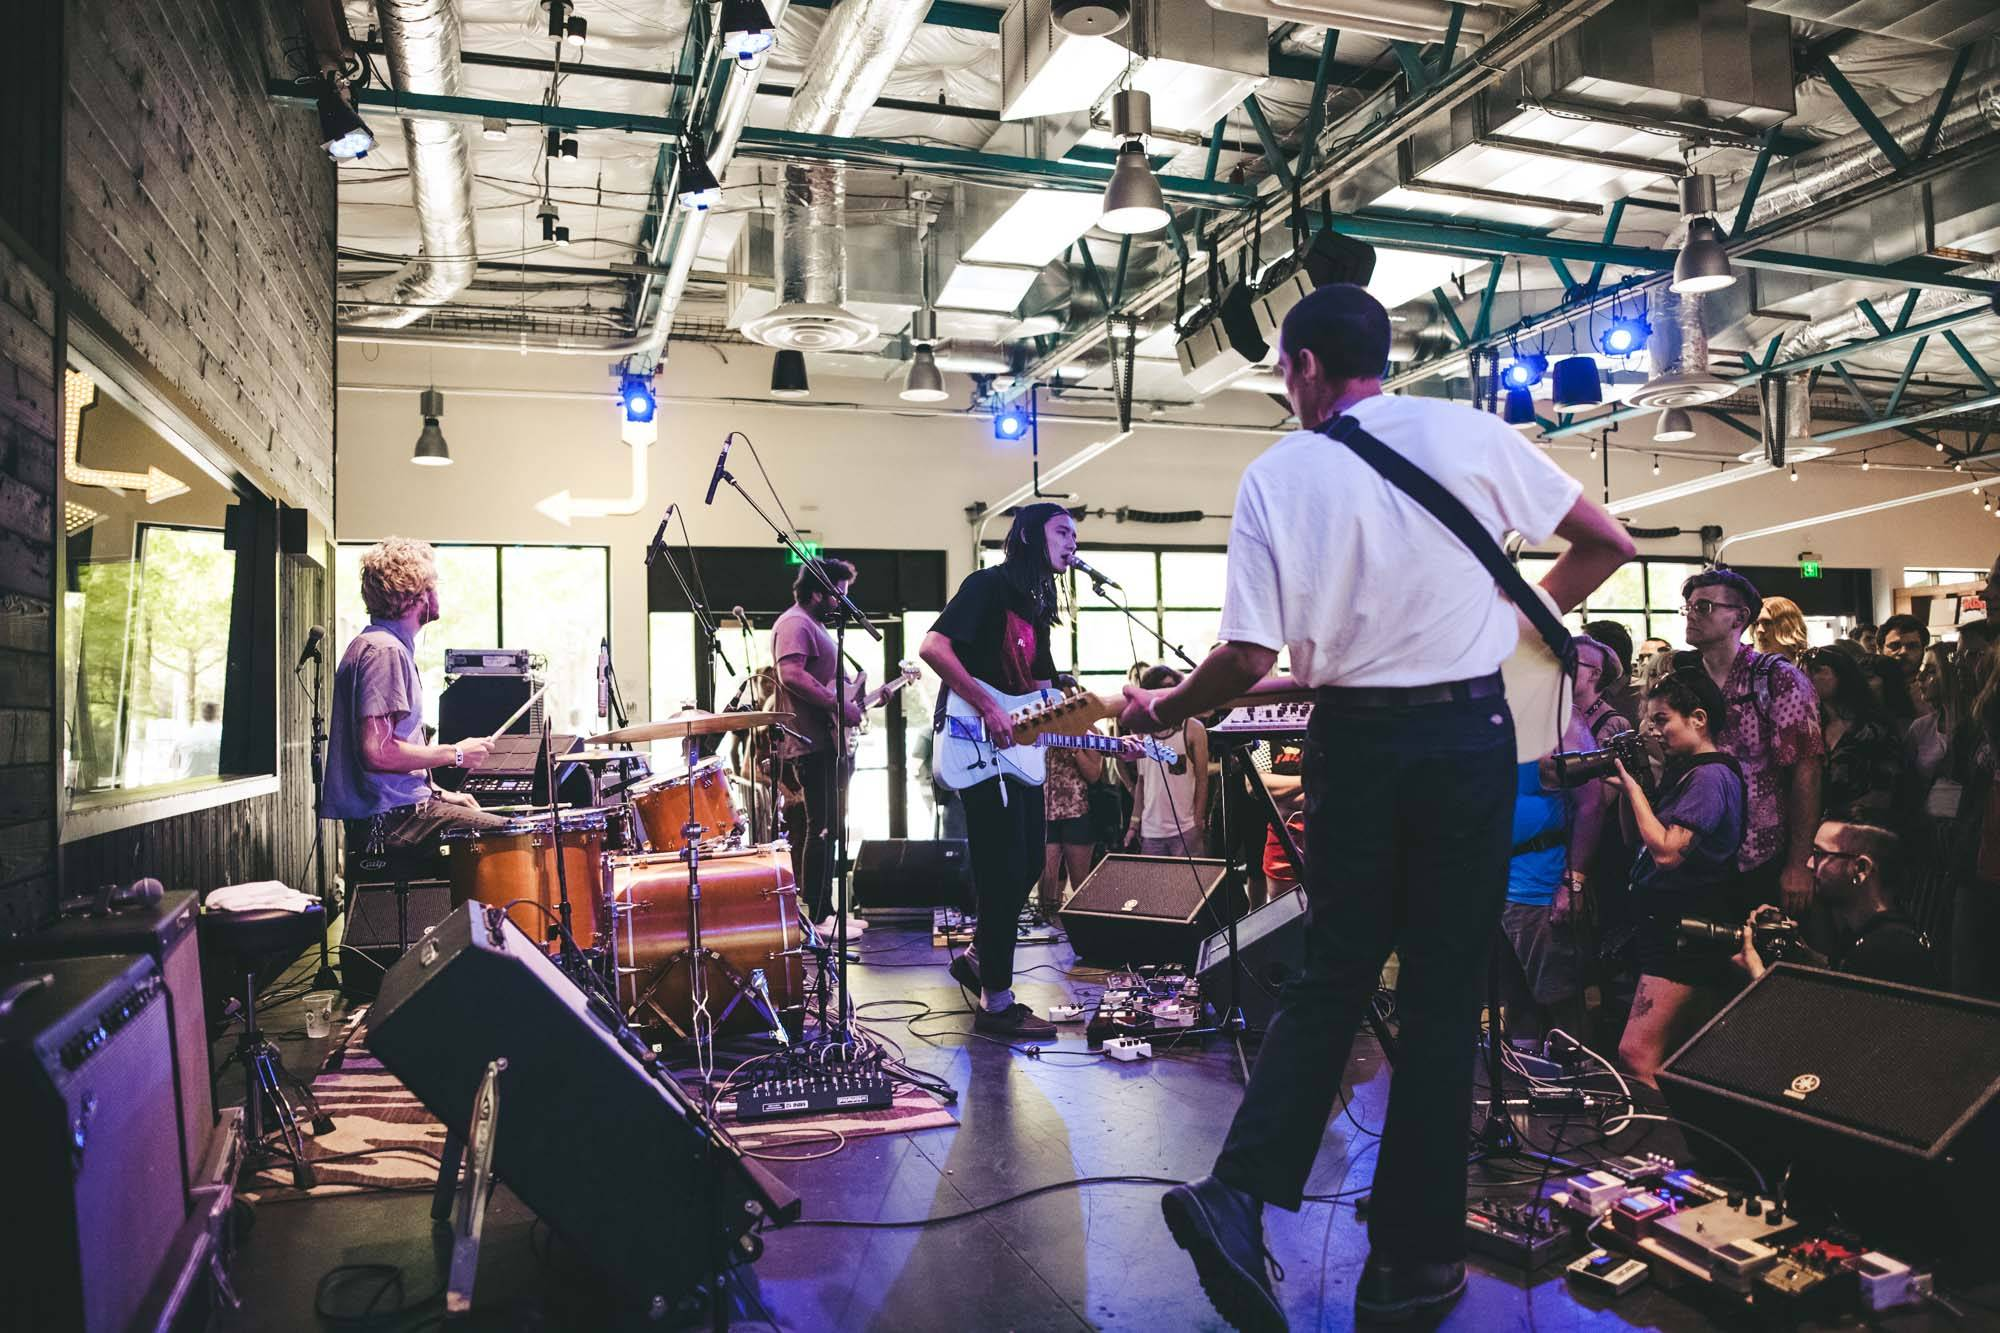 Froth at Bumbershoot 2017, Seattle, Sept 3 2017. Kelli Anne photo.